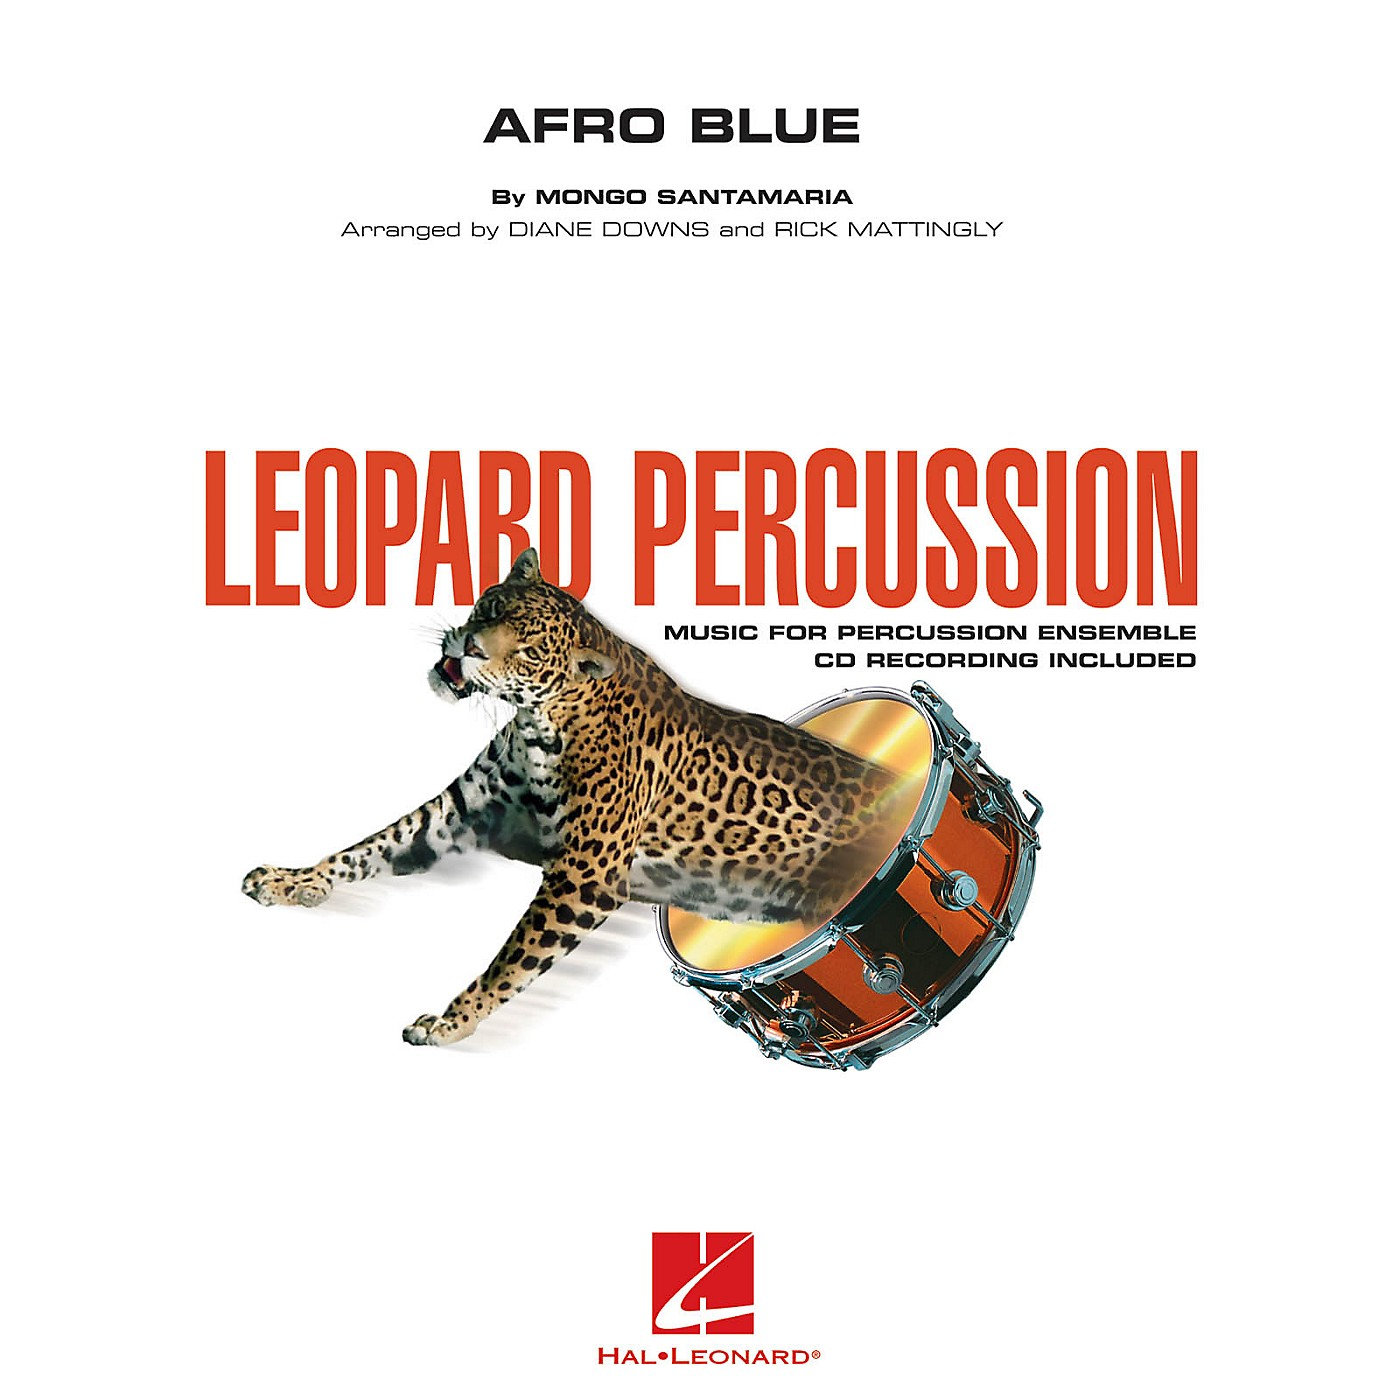 Hal Leonard Afro Blue (Leopard Percussion) Concert Band Level 3 Arranged by Diane Downs thumbnail